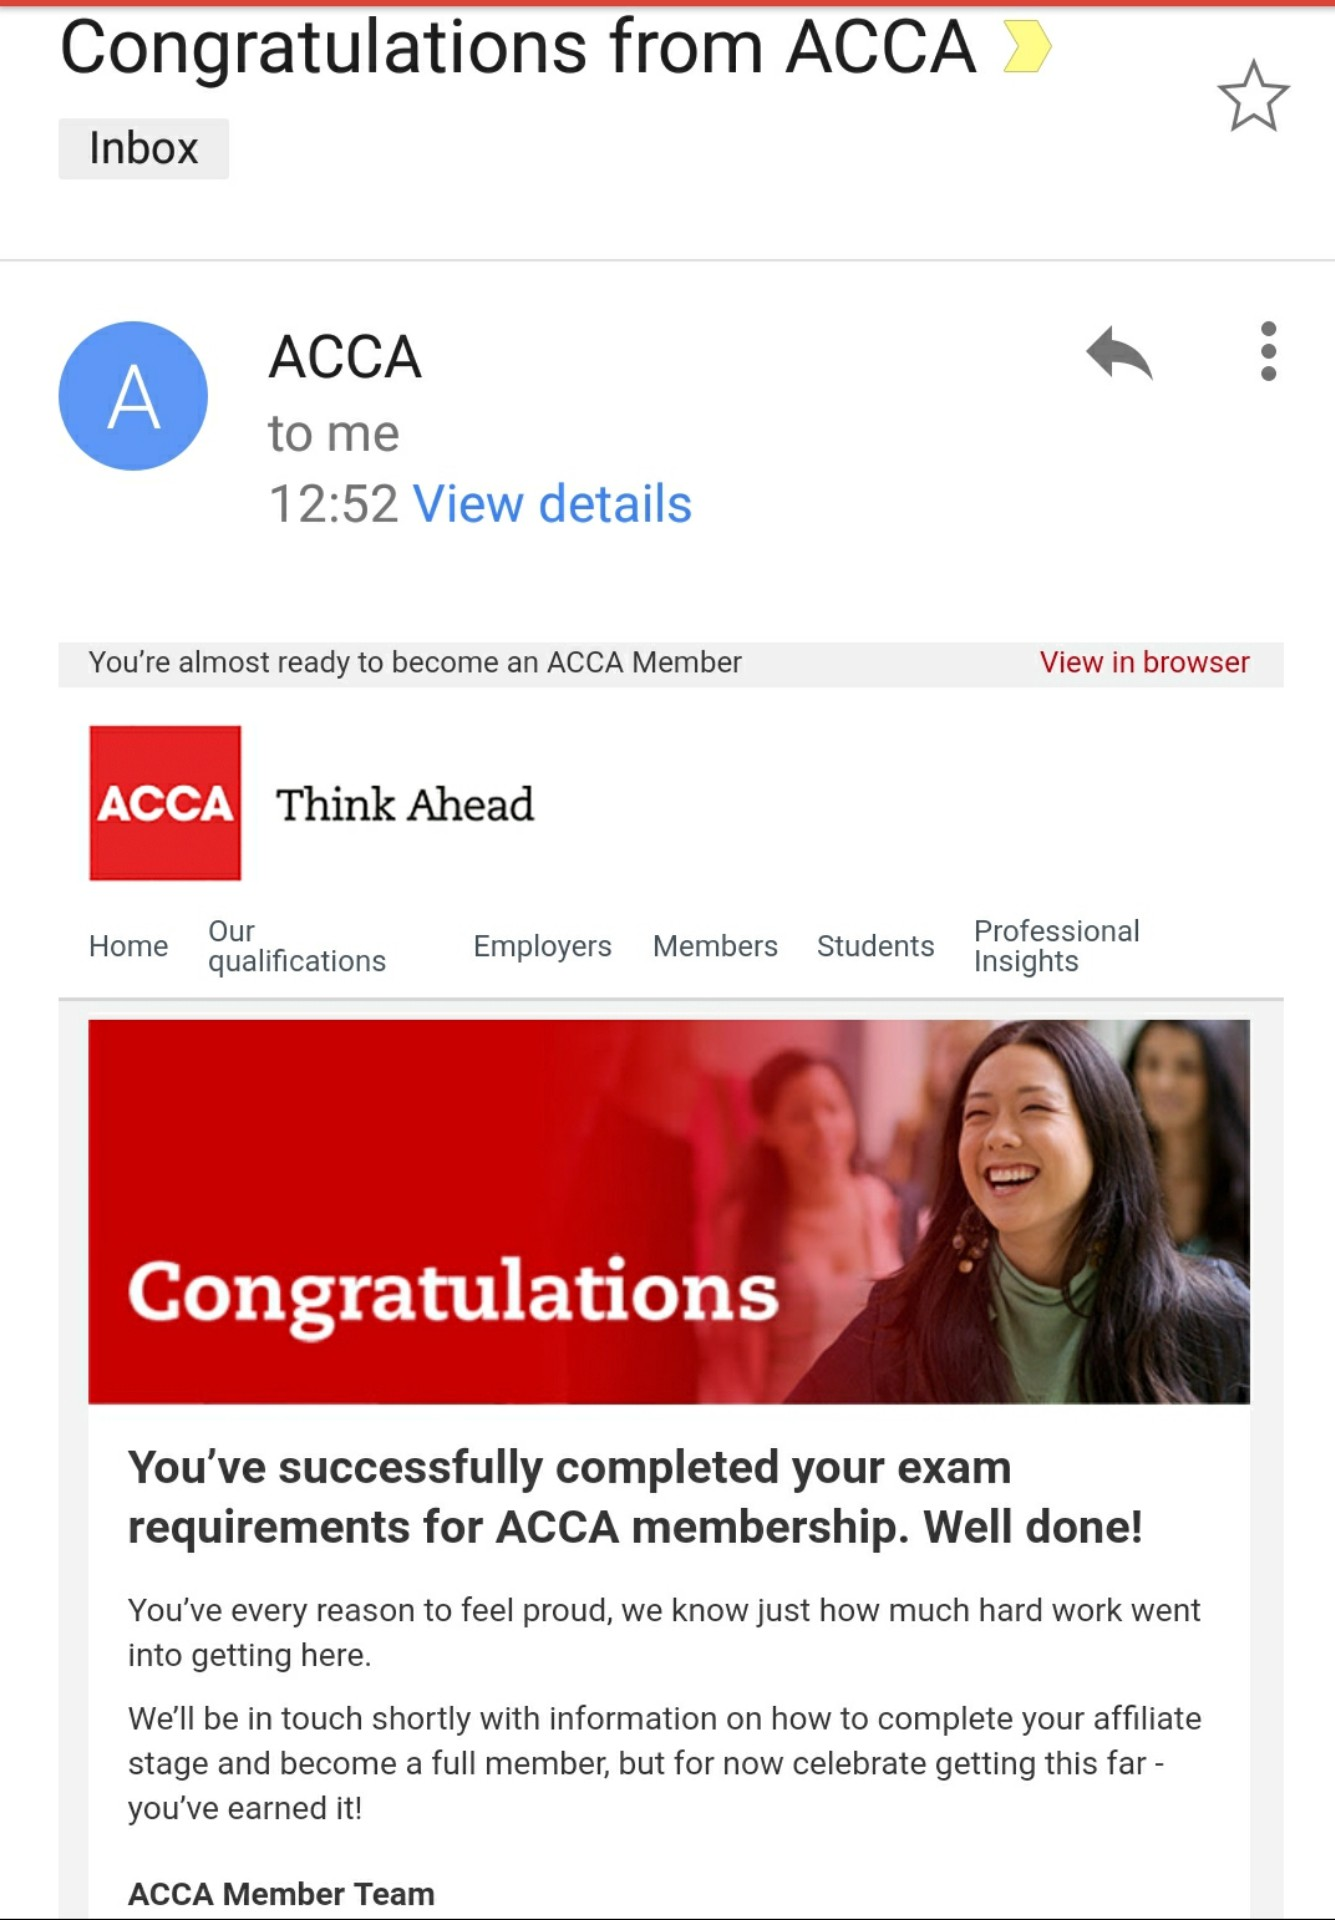 ACCA: I'm done - Daniel Adeyemi - Medium